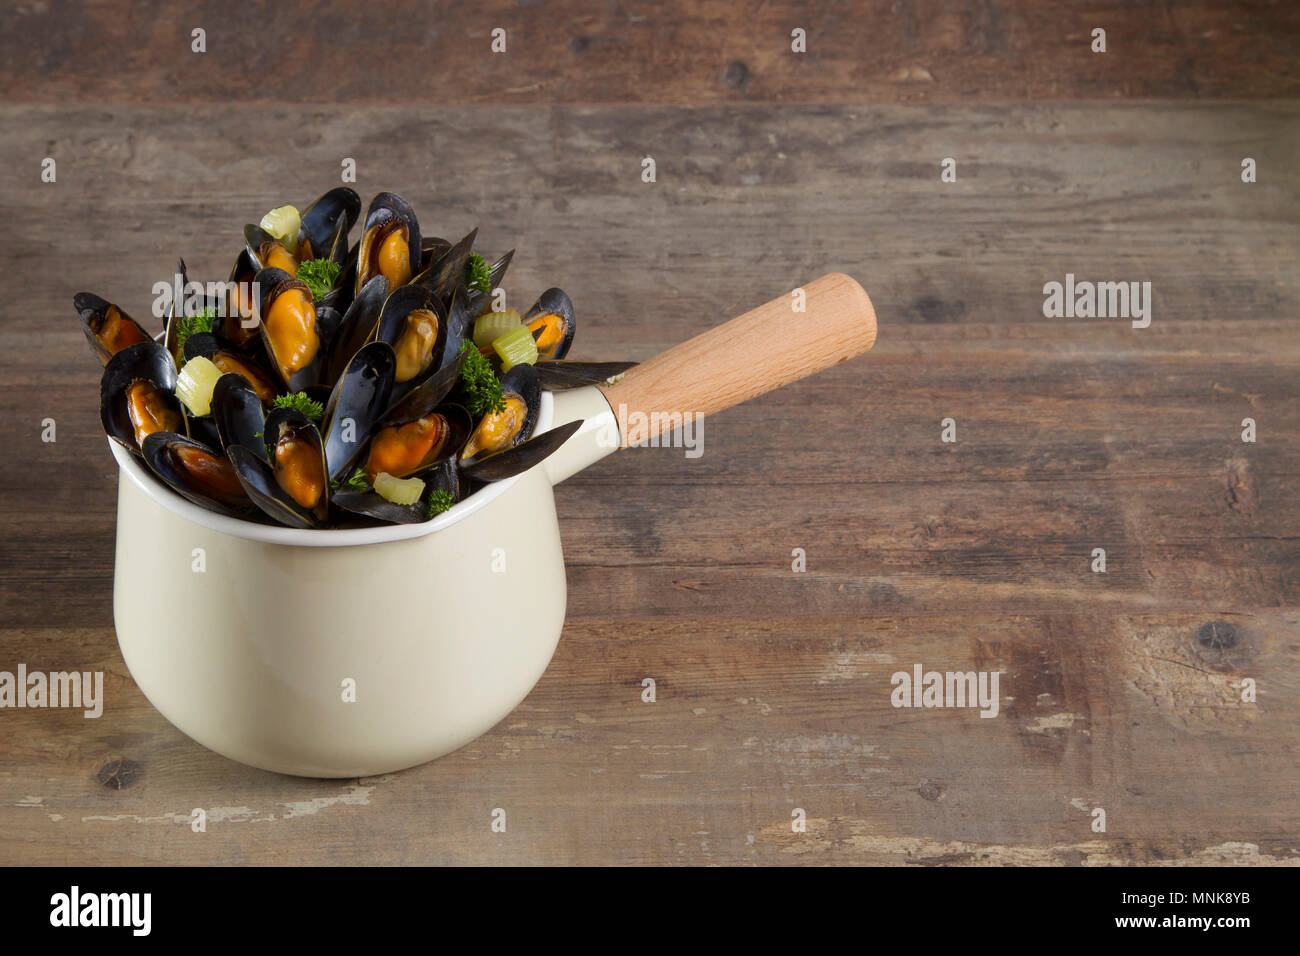 Dish, mussels - Stock Image